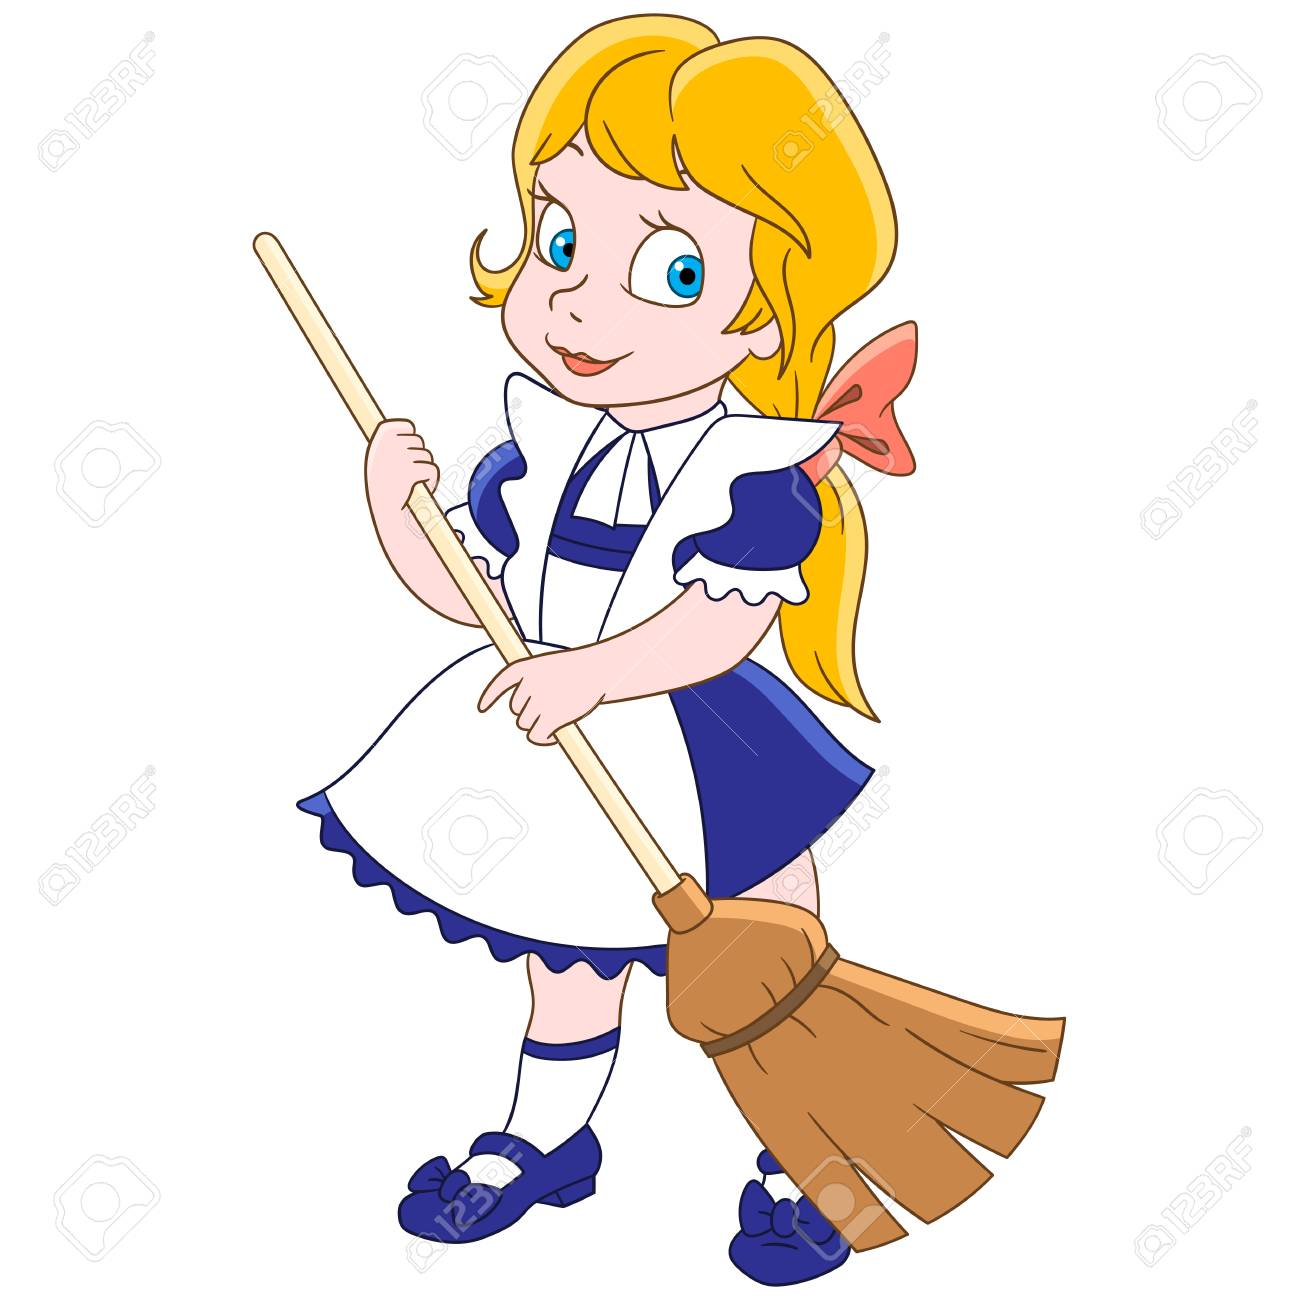 cartoon young girl sweeping the floor with a broom colorful royalty free cliparts vectors and stock illustration image 91423432 cartoon young girl sweeping the floor with a broom colorful